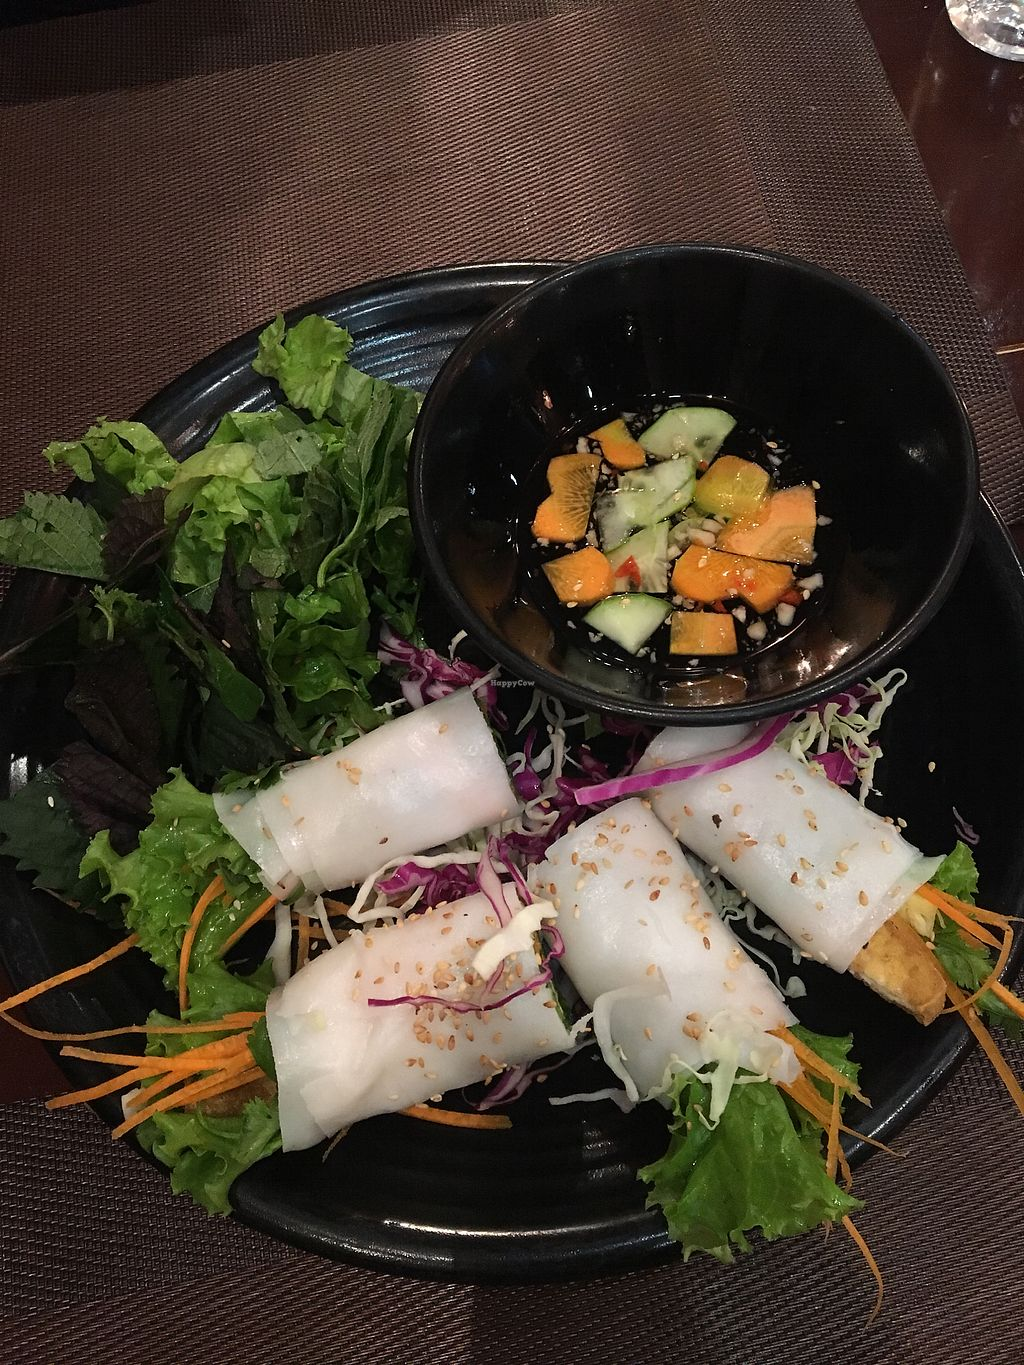 """Photo of Green Farm  by <a href=""""/members/profile/TaylorKingham"""">TaylorKingham</a> <br/>Tofu veg spring rolls <br/> April 5, 2018  - <a href='/contact/abuse/image/116426/381124'>Report</a>"""